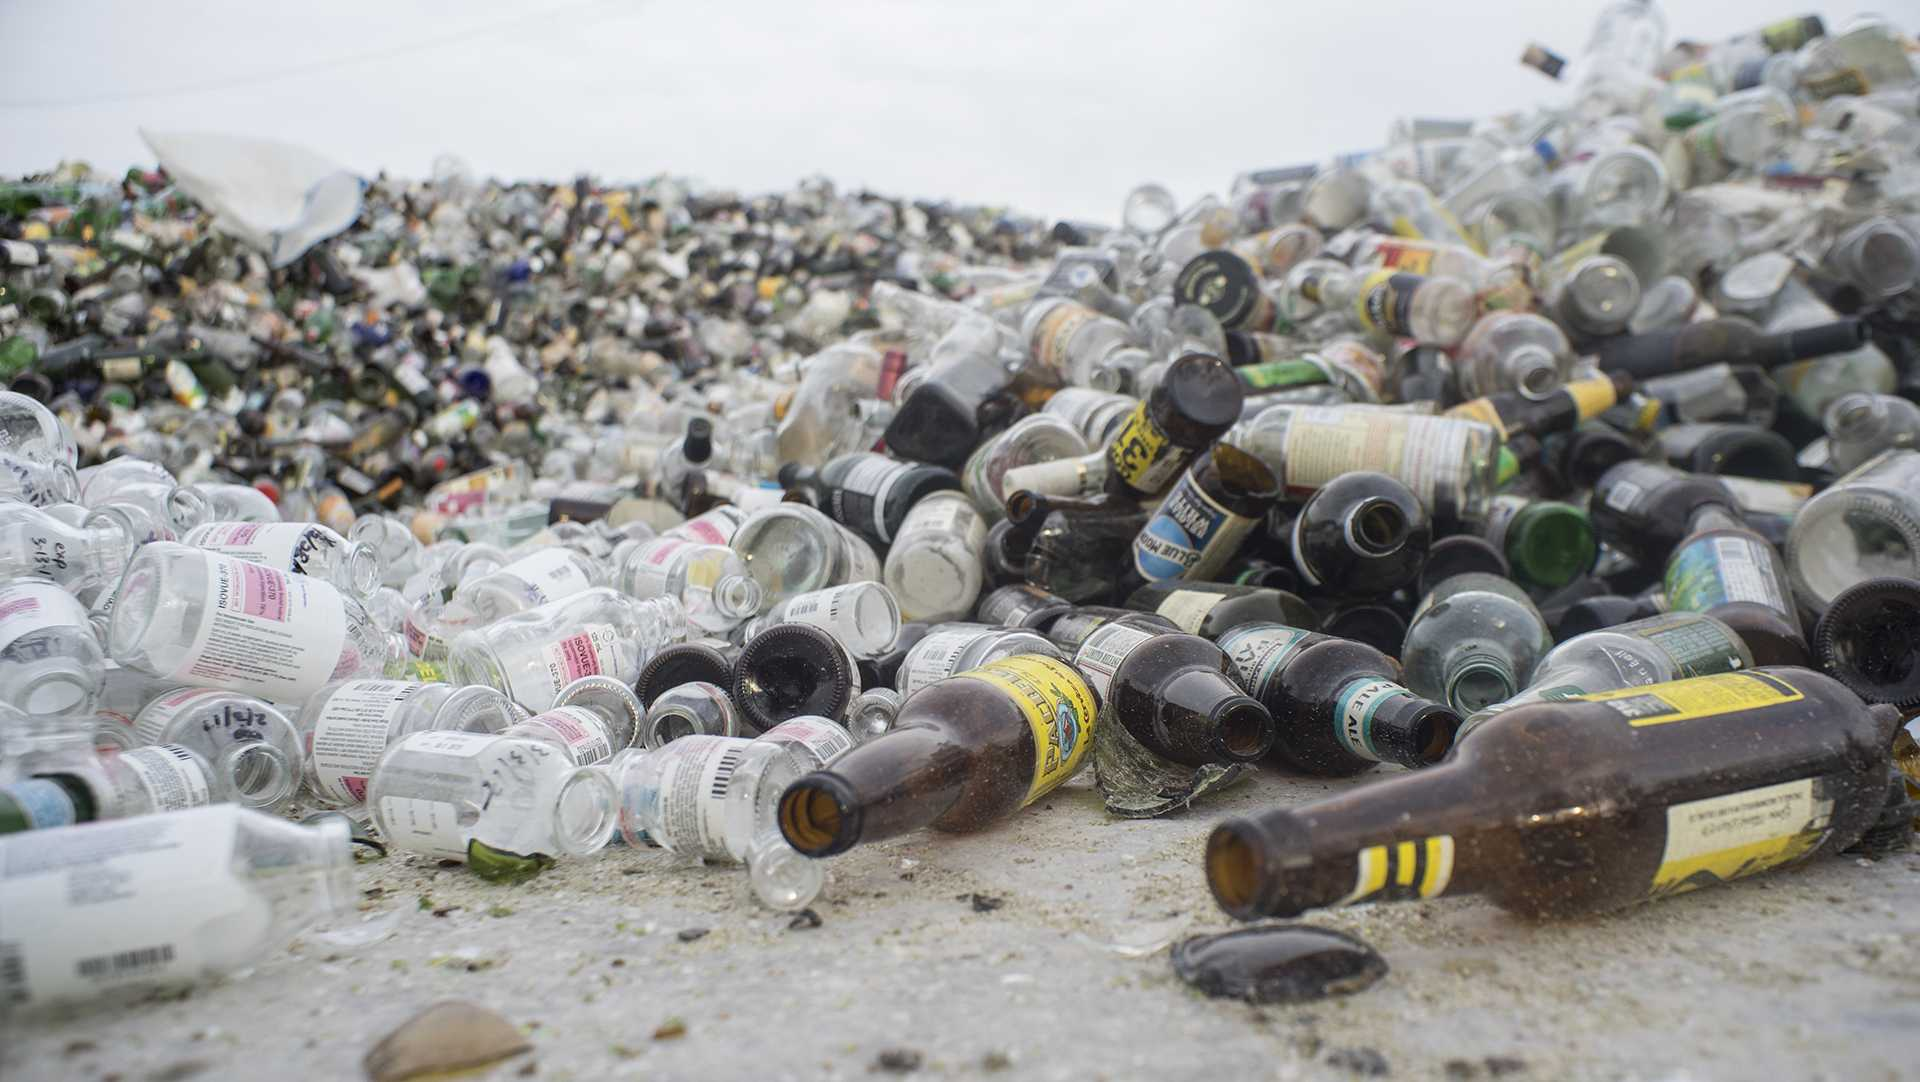 Iowa City simplifies, switches to single-stream recycling